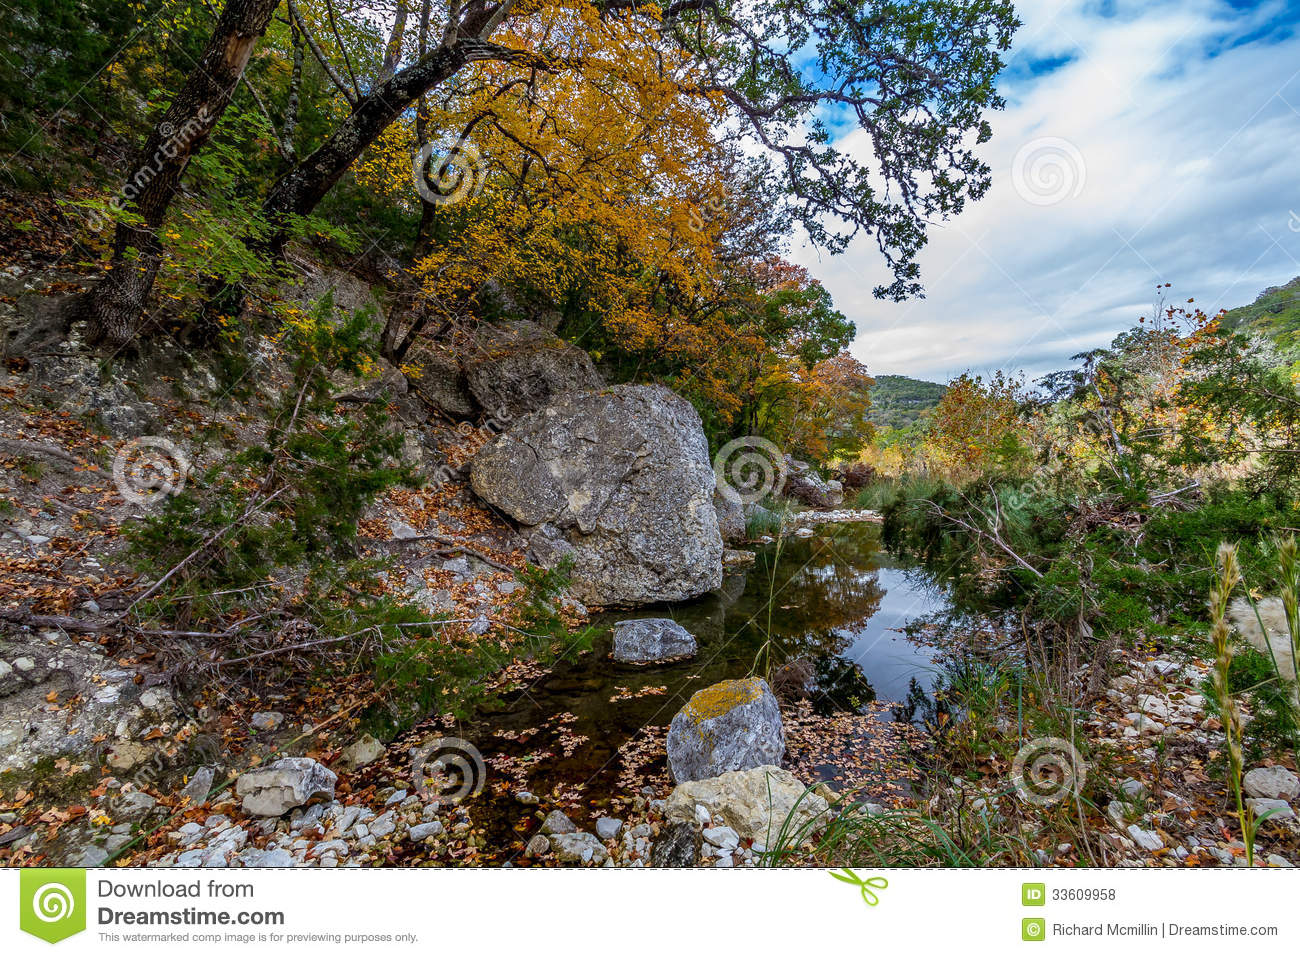 A Picturesque Scene with Beautiful Fall Foliage on a Tranquil Babbling Brook at Lost Maples State Park in Texas.